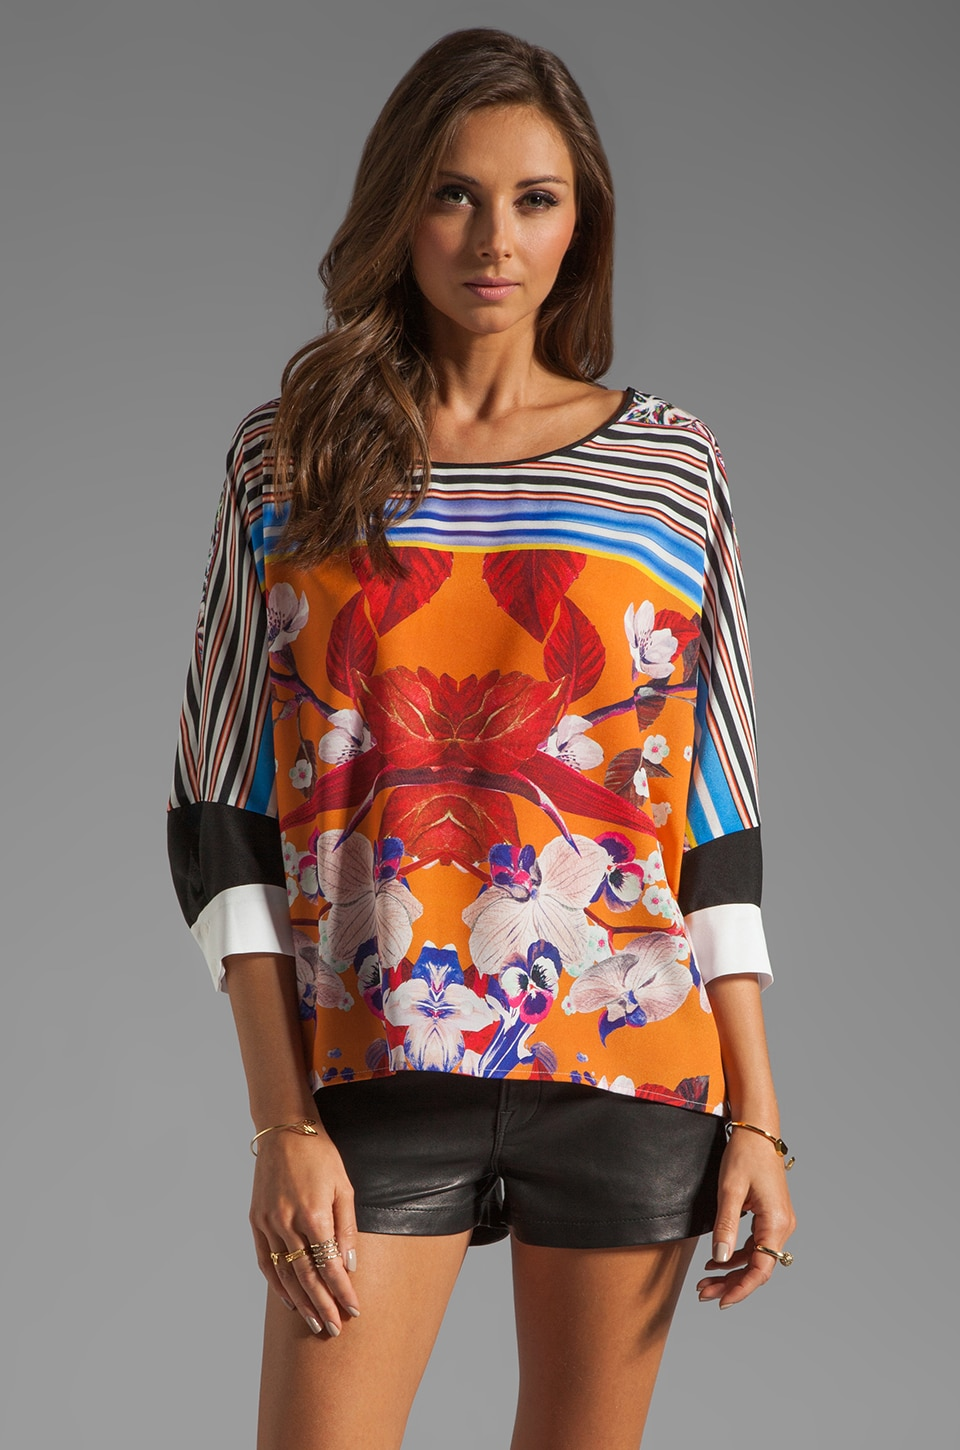 Clover Canyon Prism Orchid Top in Orange